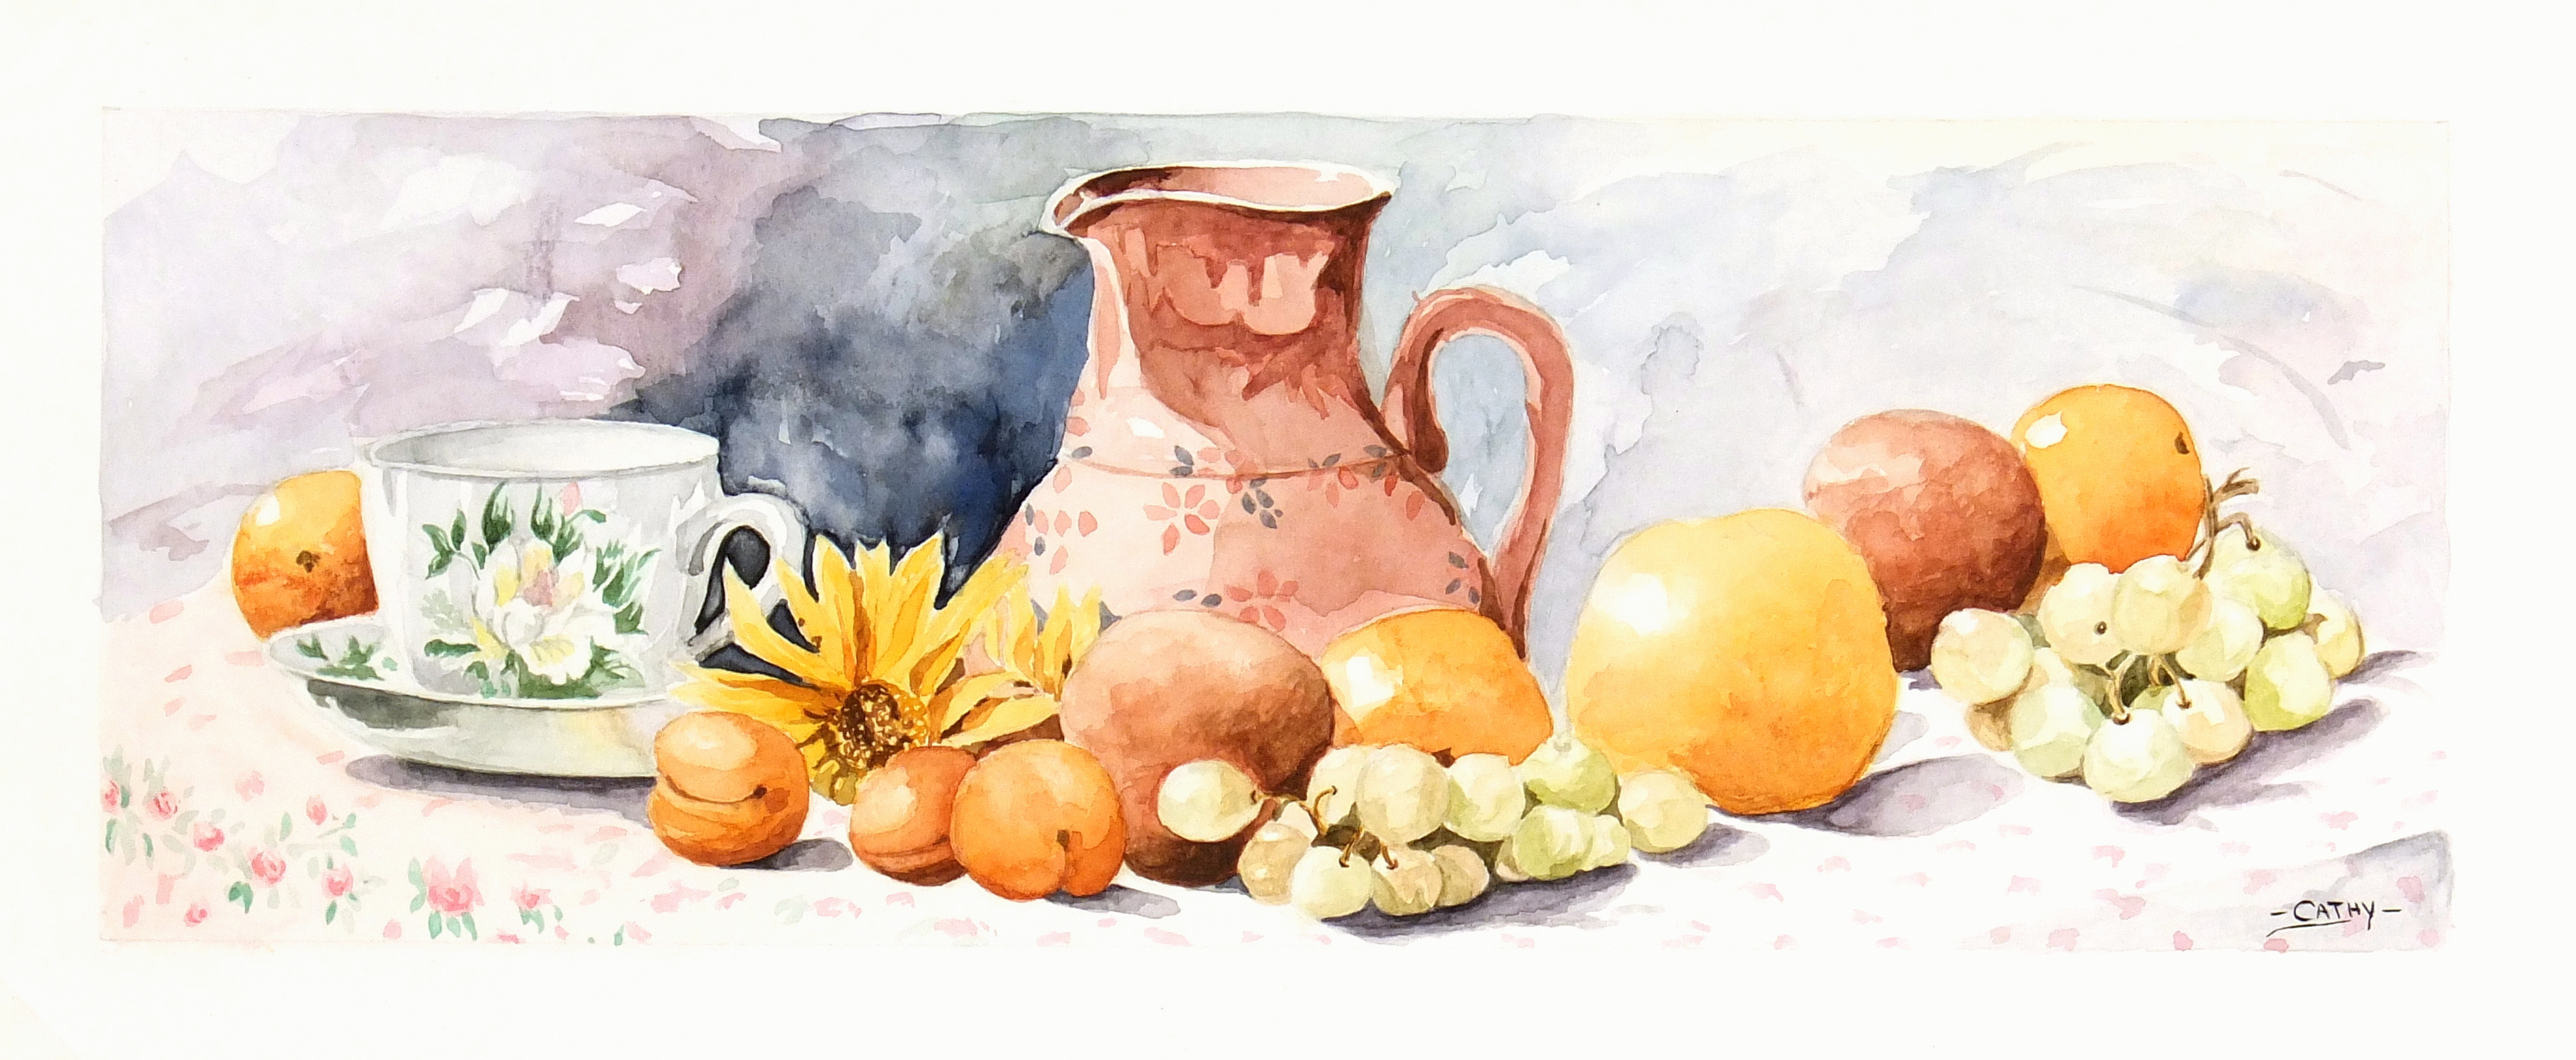 Watercolor Still Life- Season Harvest-main-7017K